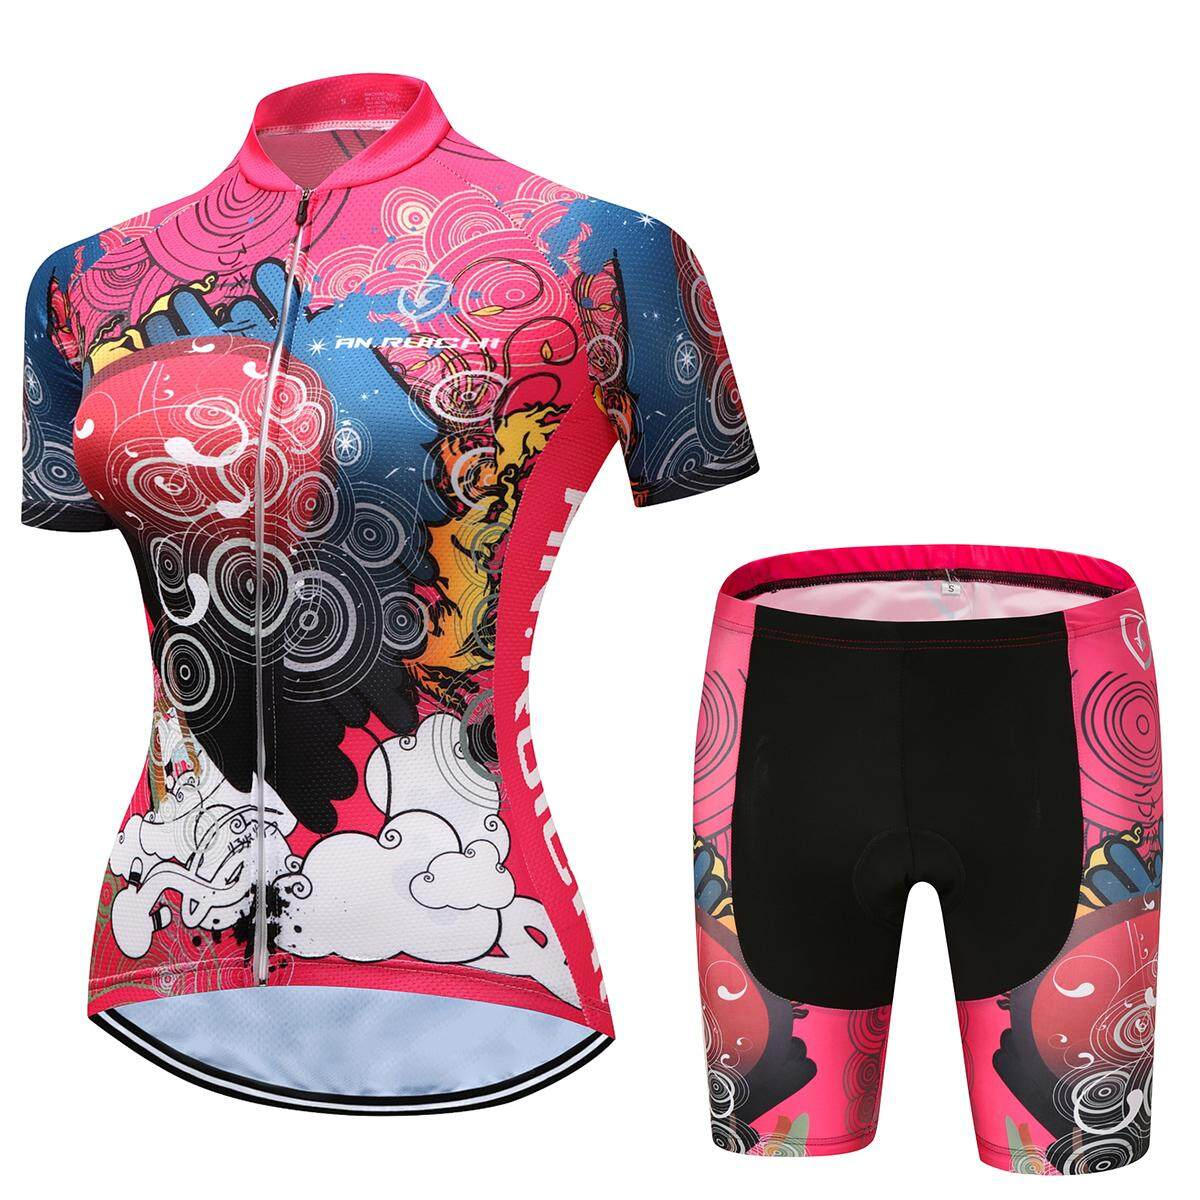 49a4a397545 2018 Women Cycling Jersey Pro Team Short Sleeve Breathable Sports Cycling  Clothing